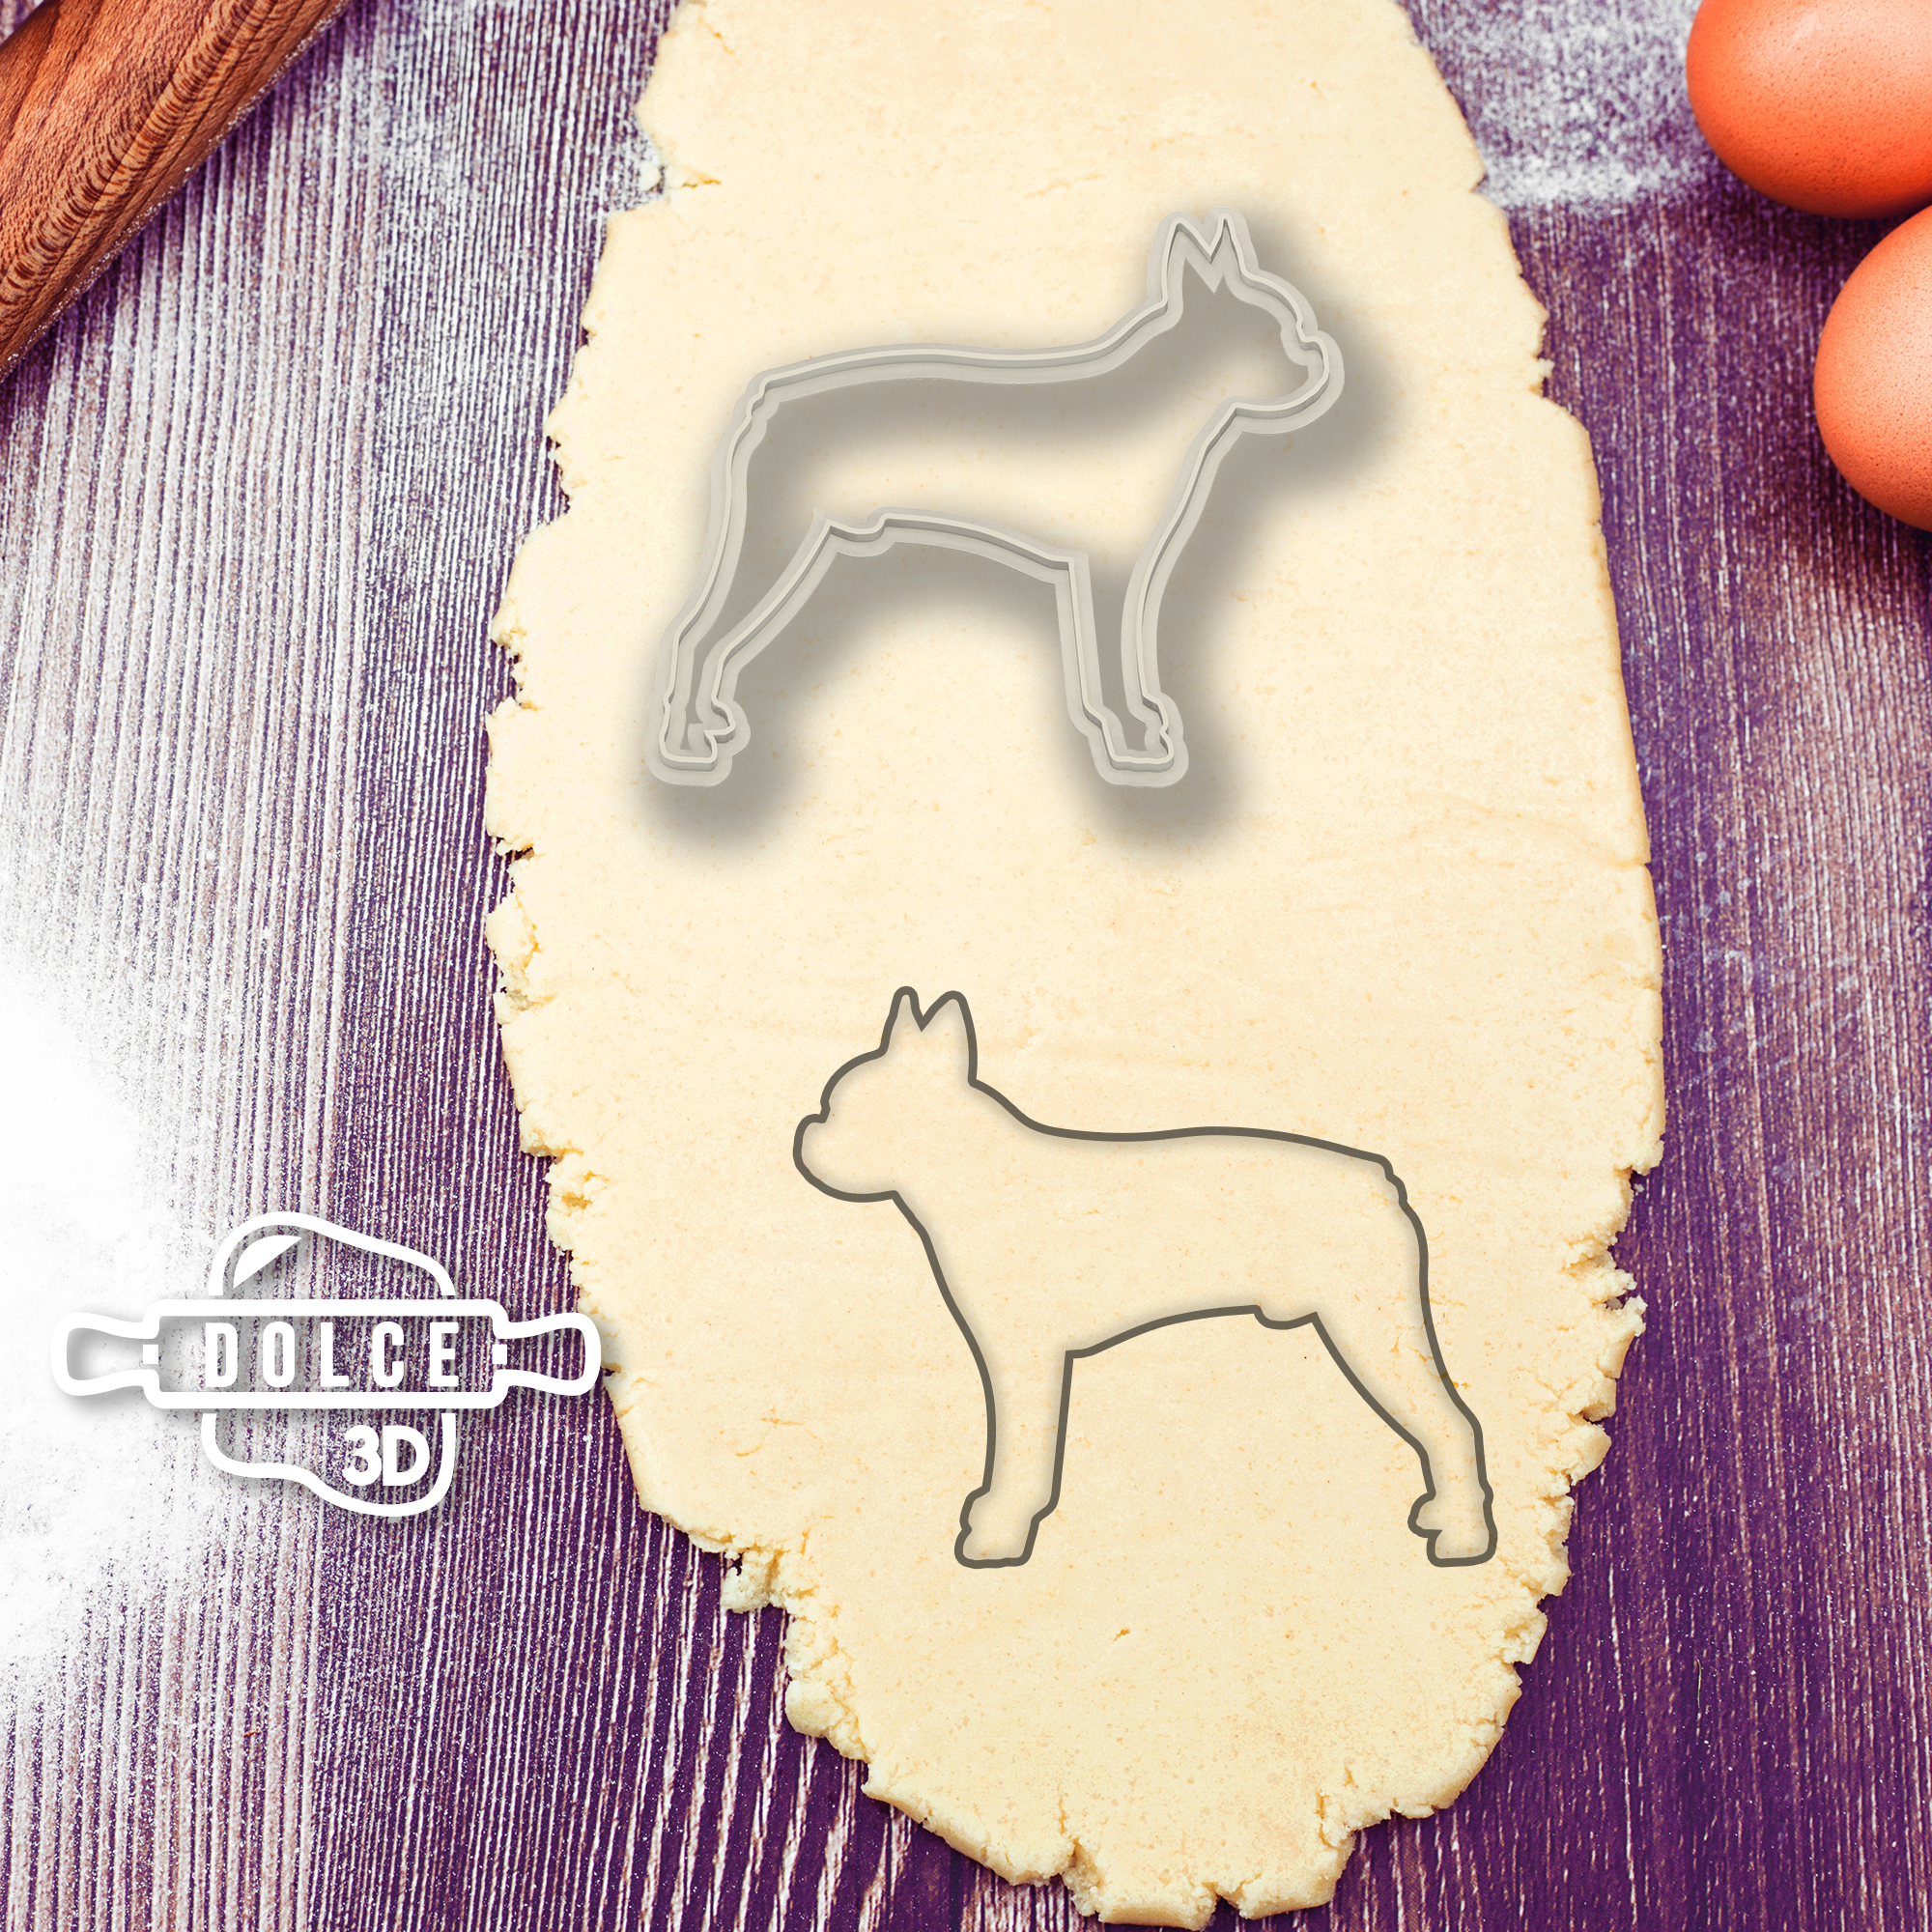 Boston Terrier Cookie Cutter - Dolce3D Italia